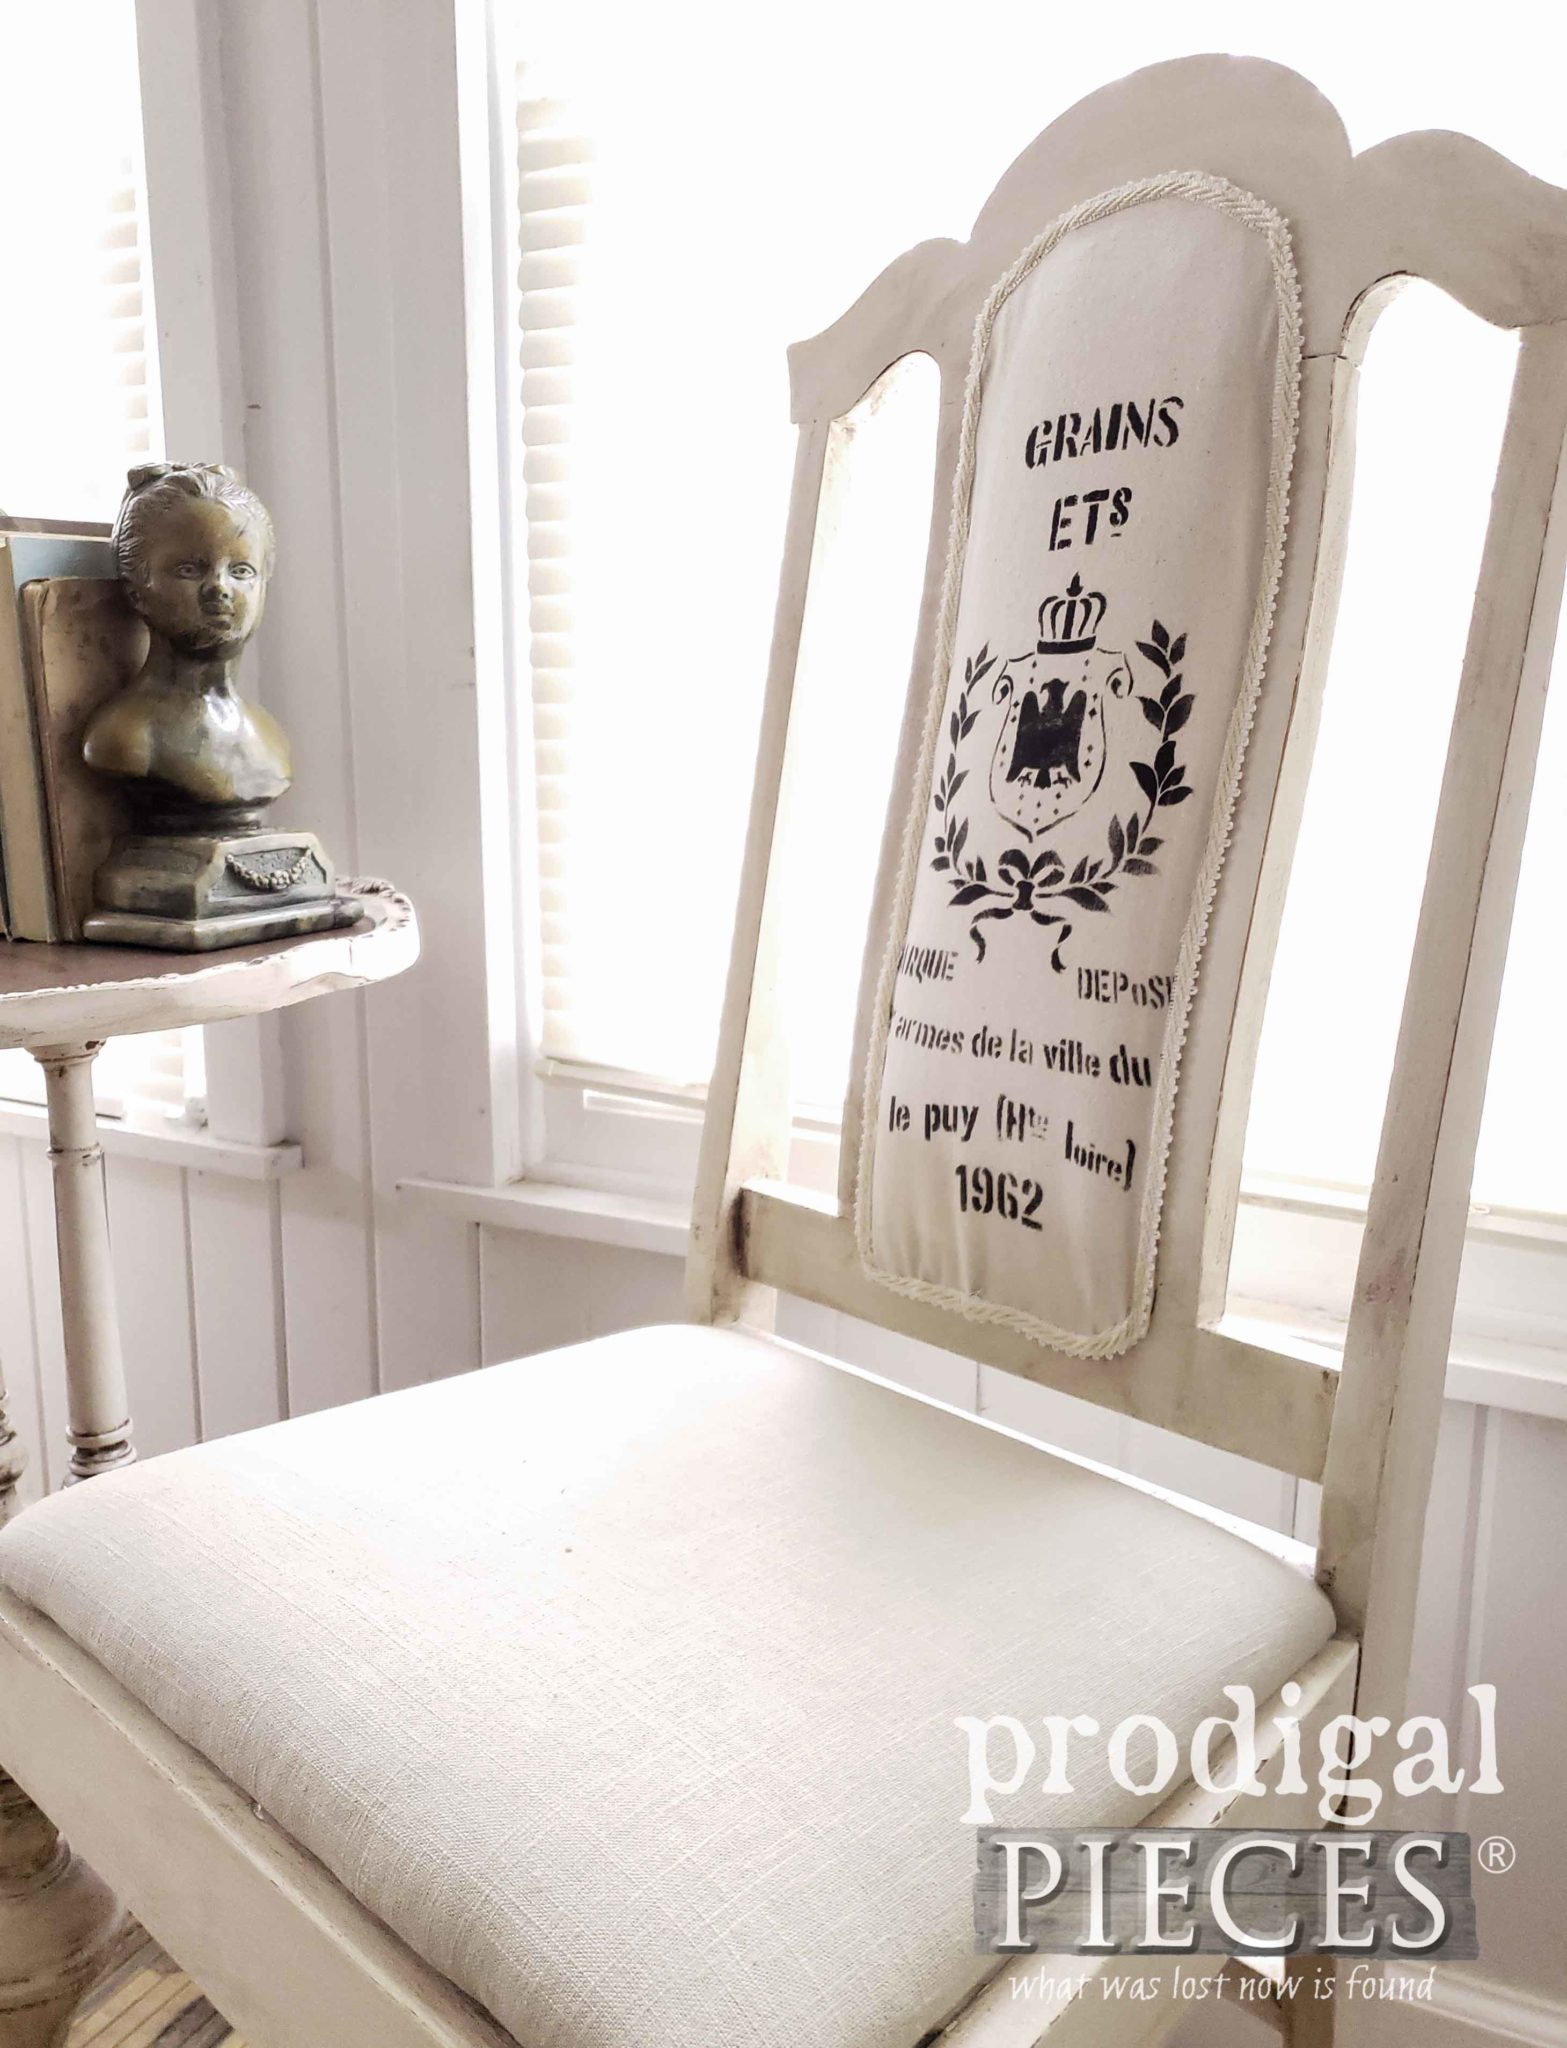 DIY Linen Upholstery with Grain Sack Antique Chairs by Larissa of Prodigal Pieces | prodigalpieces.com #prodigalpieces #furniture #home #homedecor #diy